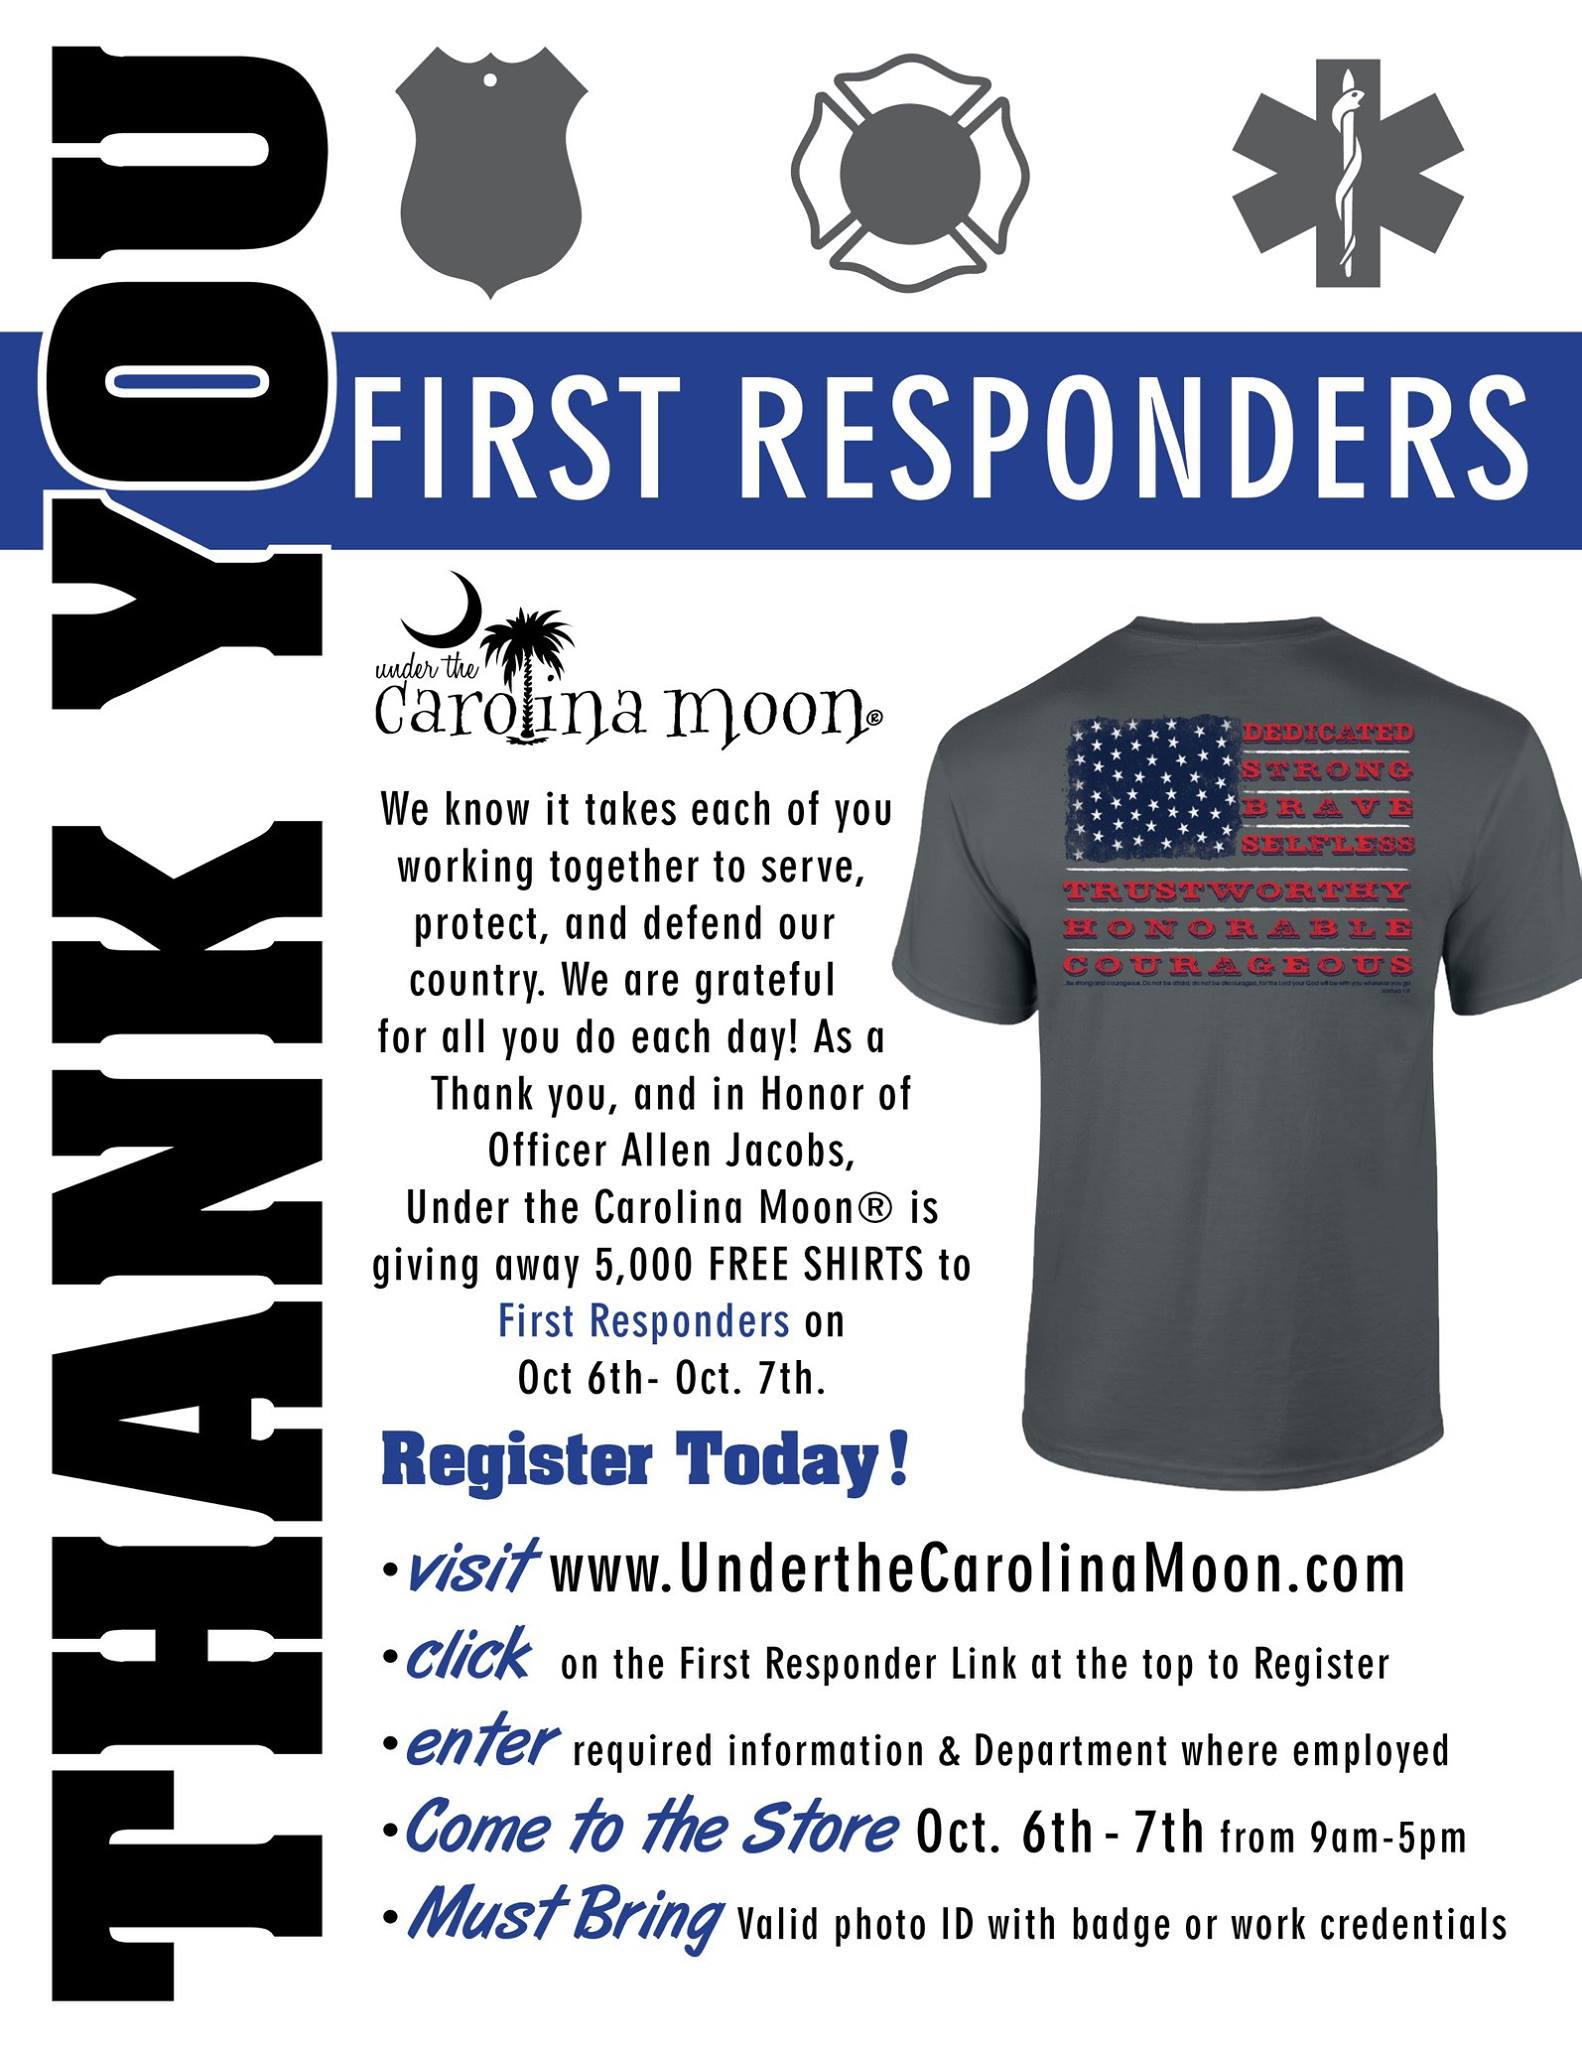 First Responder 5,000 FREE SHIRT Giveaway